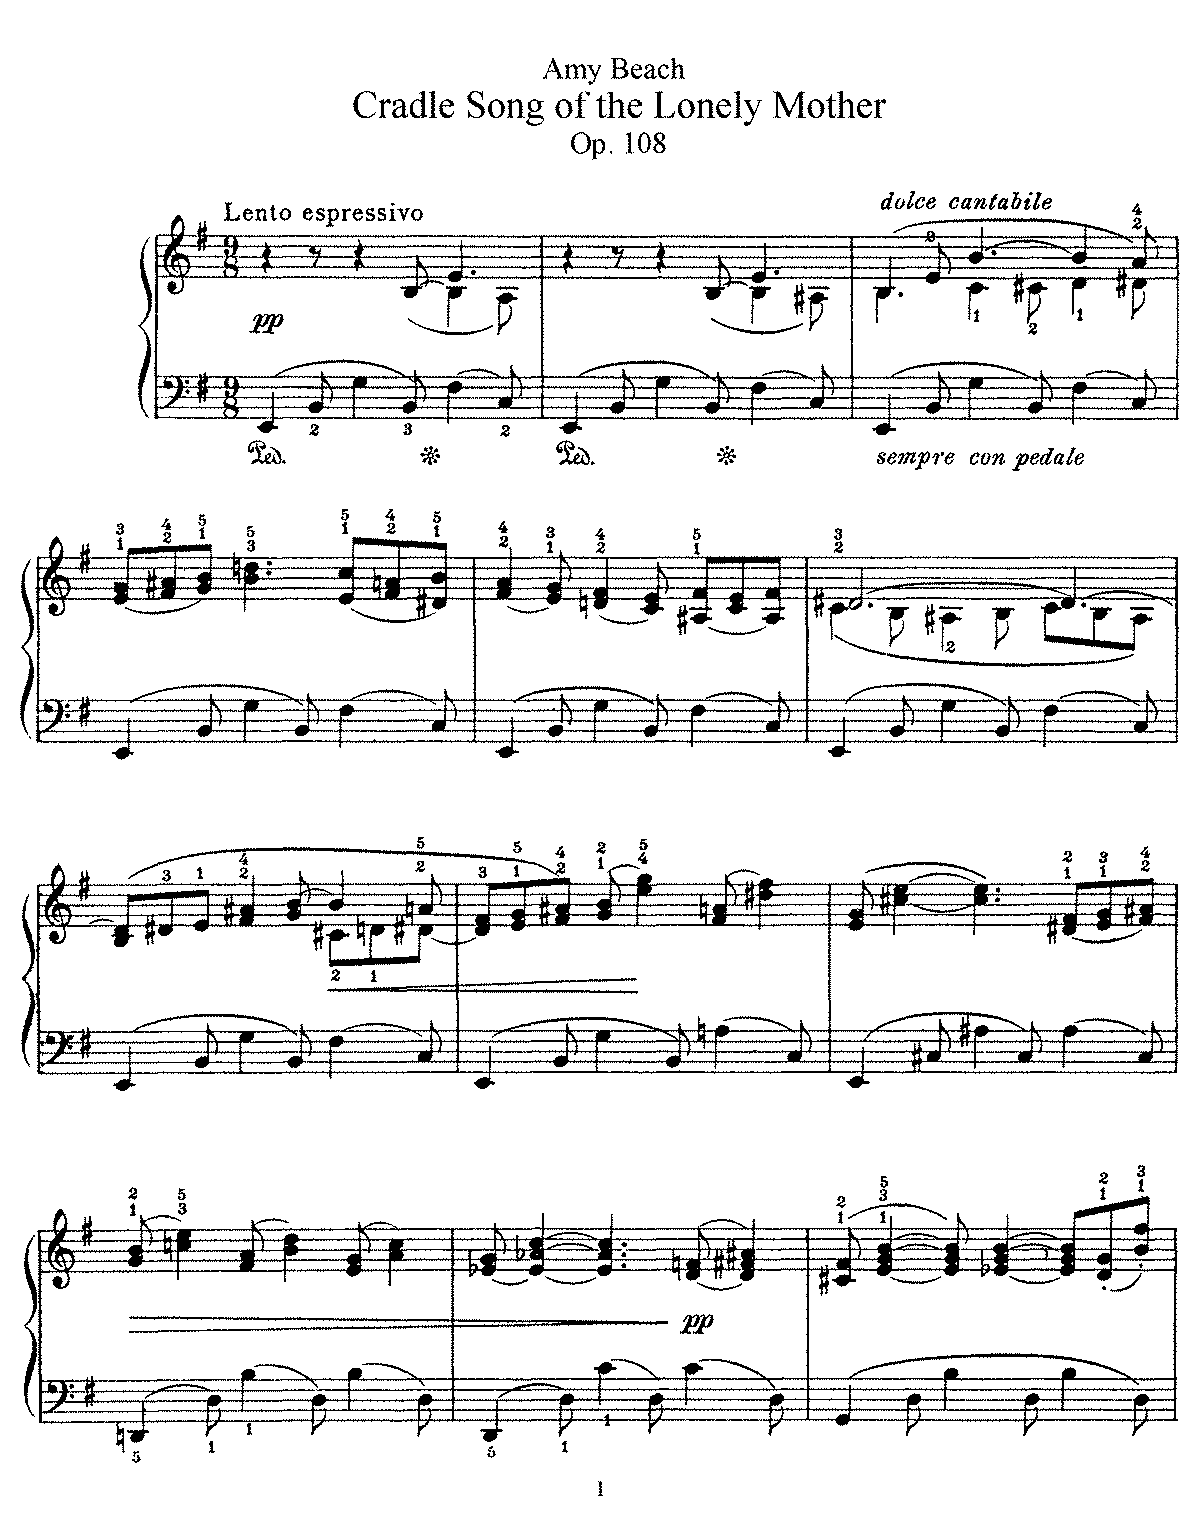 Beach - Op.108 - Cradle Song of the Lonely Mother.pdf